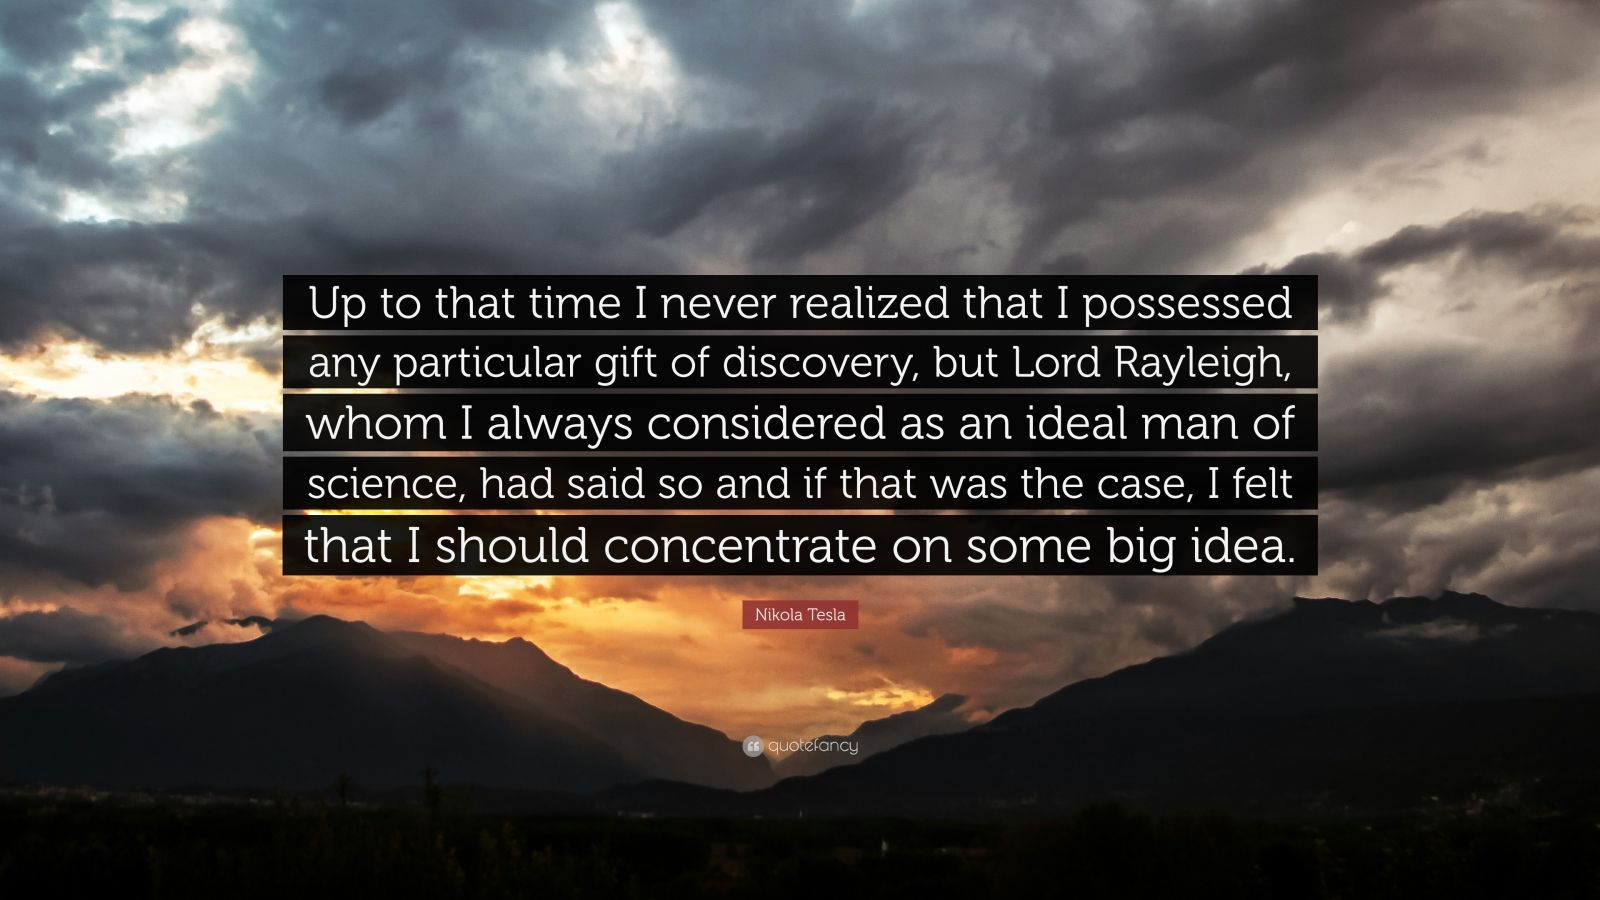 """Nikola Tesla Quote: """"Up to that time I never realized that I possessed any particular gift of discovery, but Lord Rayleigh, whom I always considered as an ideal man of science, had said so and if that was the case, I felt that I should concentrate on some big idea."""""""